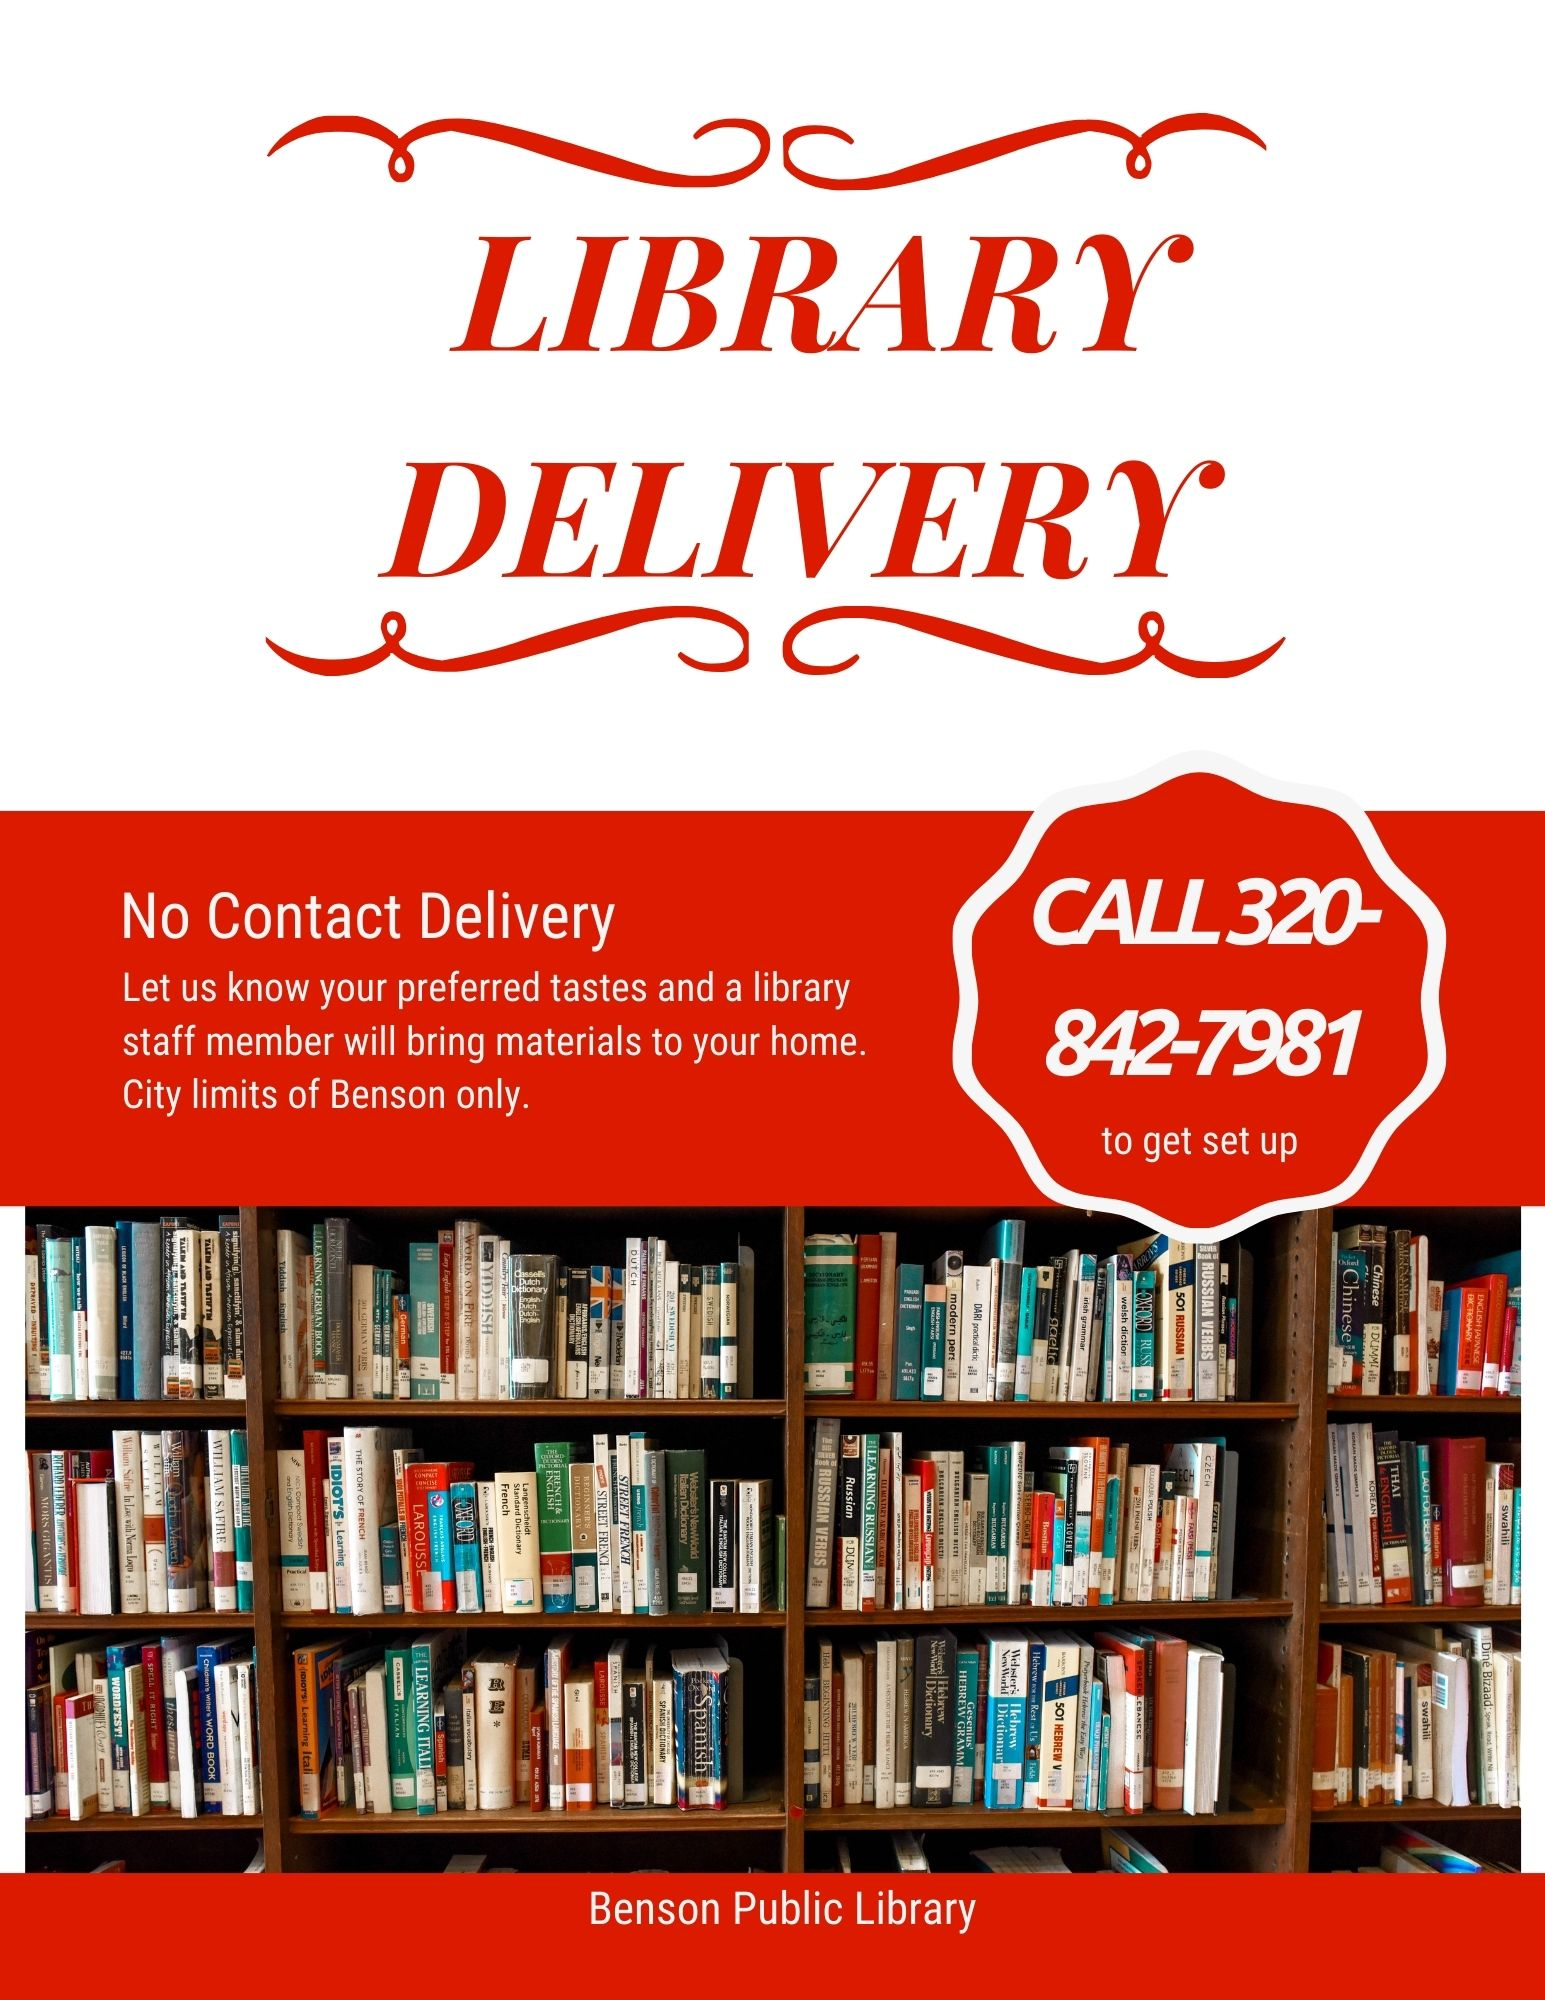 Now offering Homebound Library Services. Call 320-842-7981 to arrange.